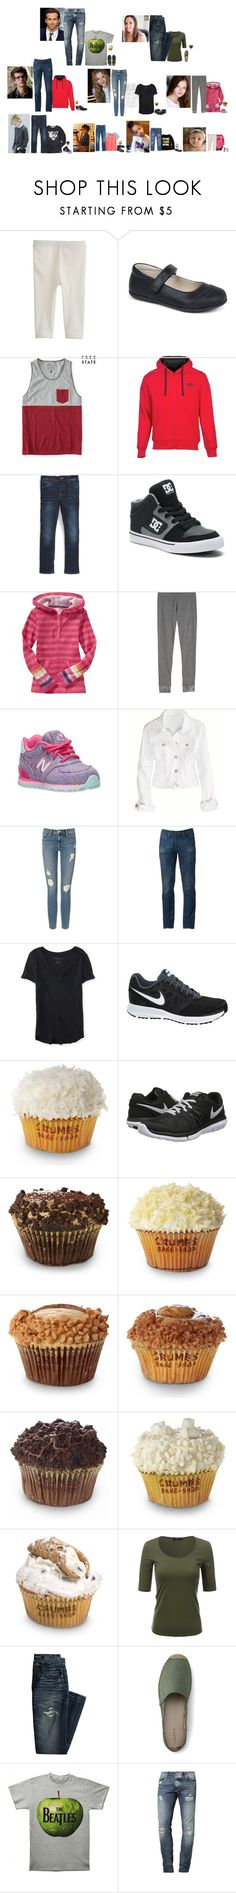 """""""The Hope family 11/19/16"""" by the-hope-family ❤ liked on Polyvore featuring Carter's, J.Crew, Converse, Old Navy, See Kai Run, Deer Stags, Aéropostale, The North Face, Appaman and DC Shoes"""